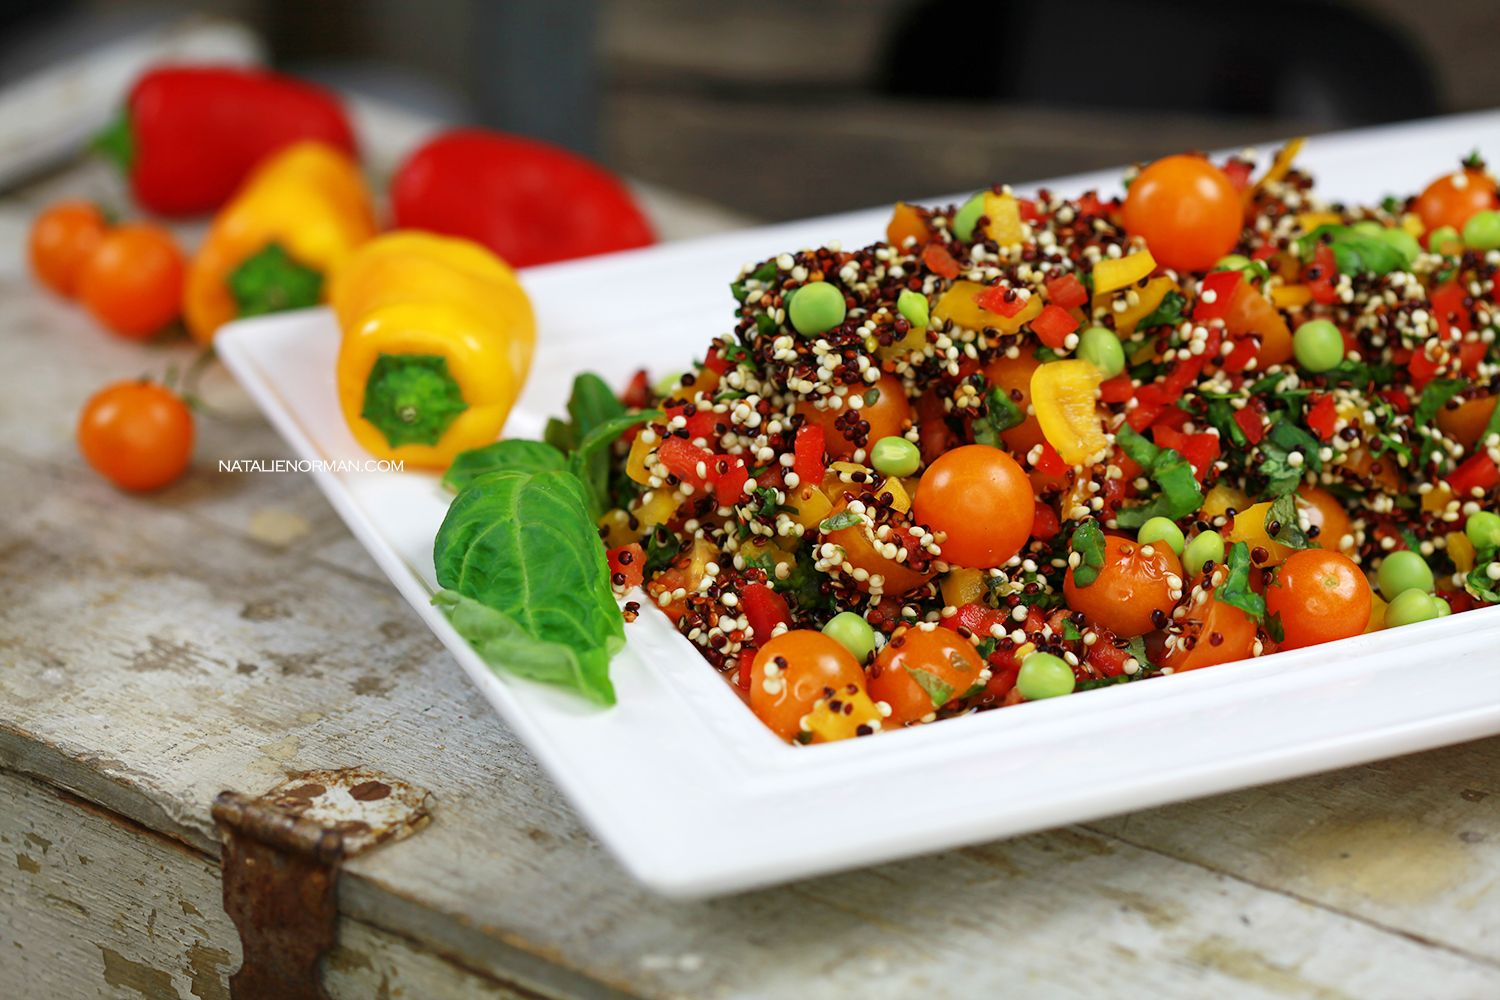 Raw vegan food mediterranean quinoa tracee raw pinterest yes its raw food easy mediterranean style quinoa learn fast simple raw vegan recipes with certified raw food educator and vegan expert natalie norman forumfinder Image collections